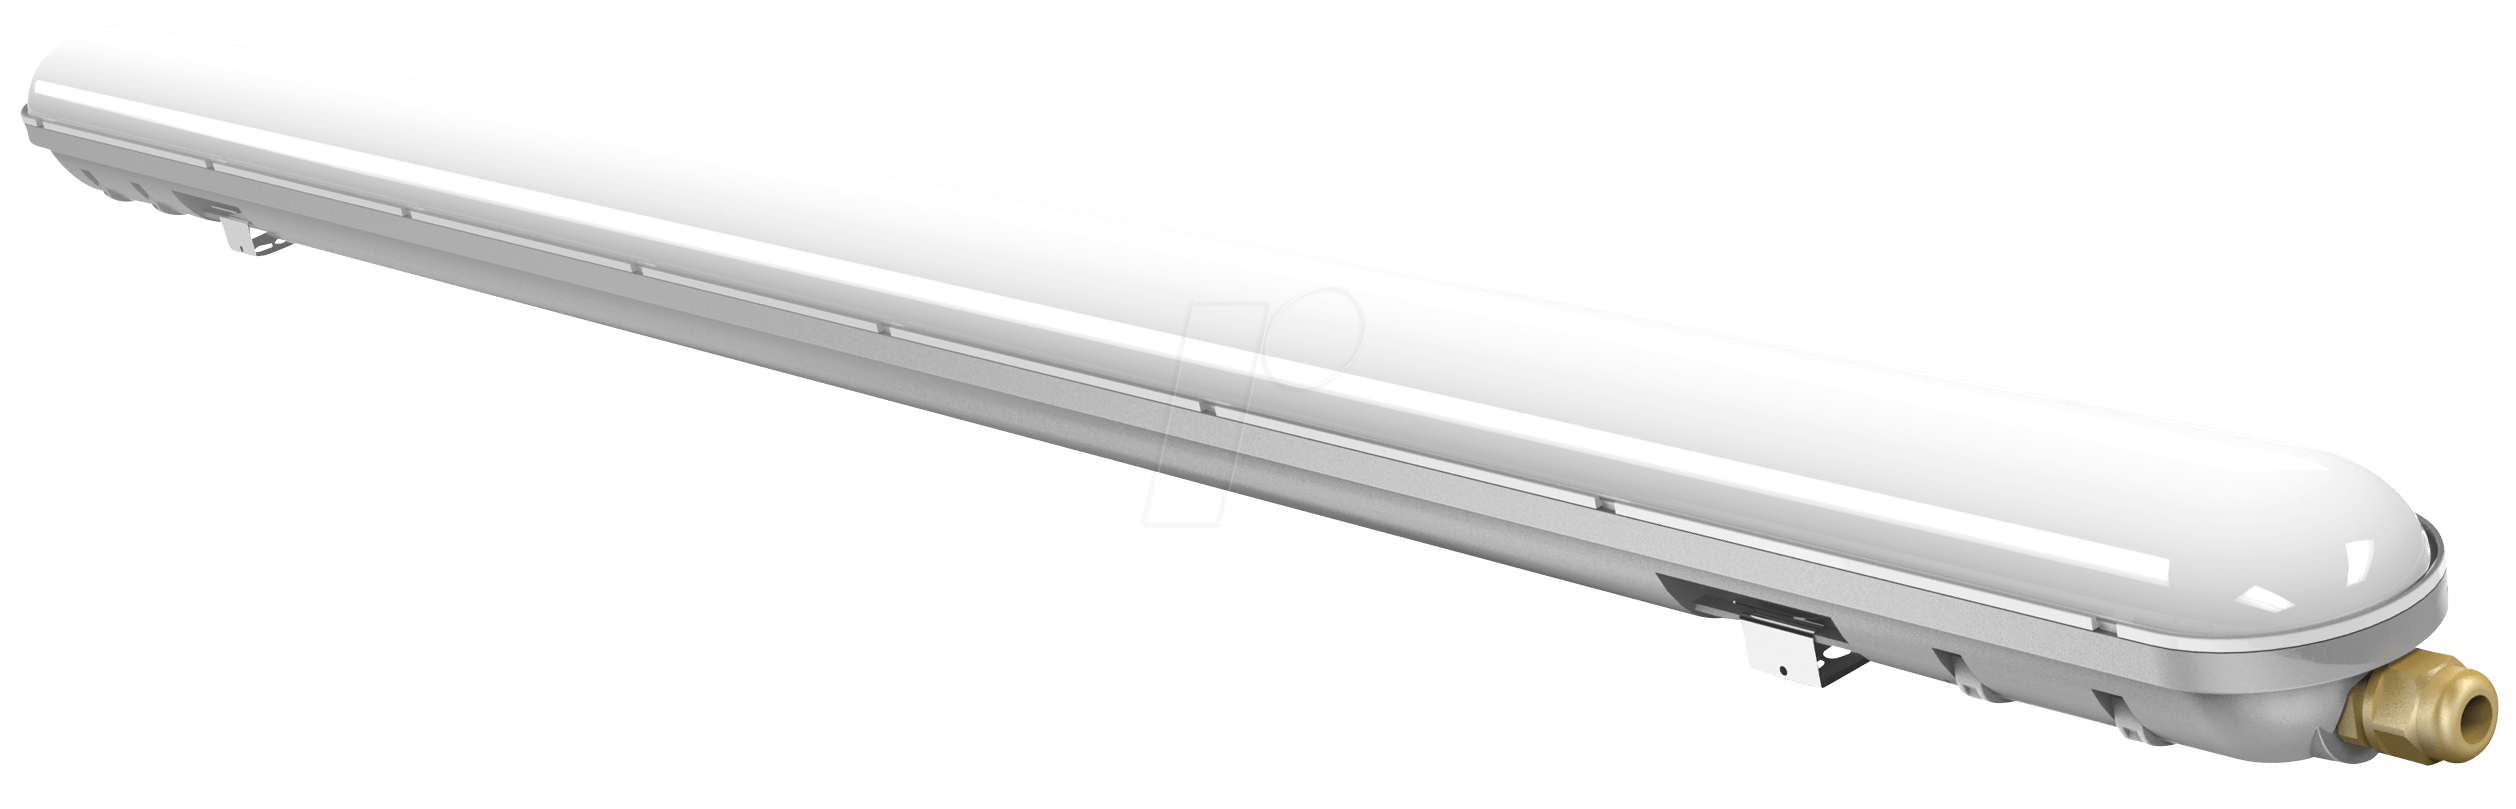 VT-6200: LED- waterproof lamp, 1200 mm, 36 W, 4500 K, EEK A+ at ...